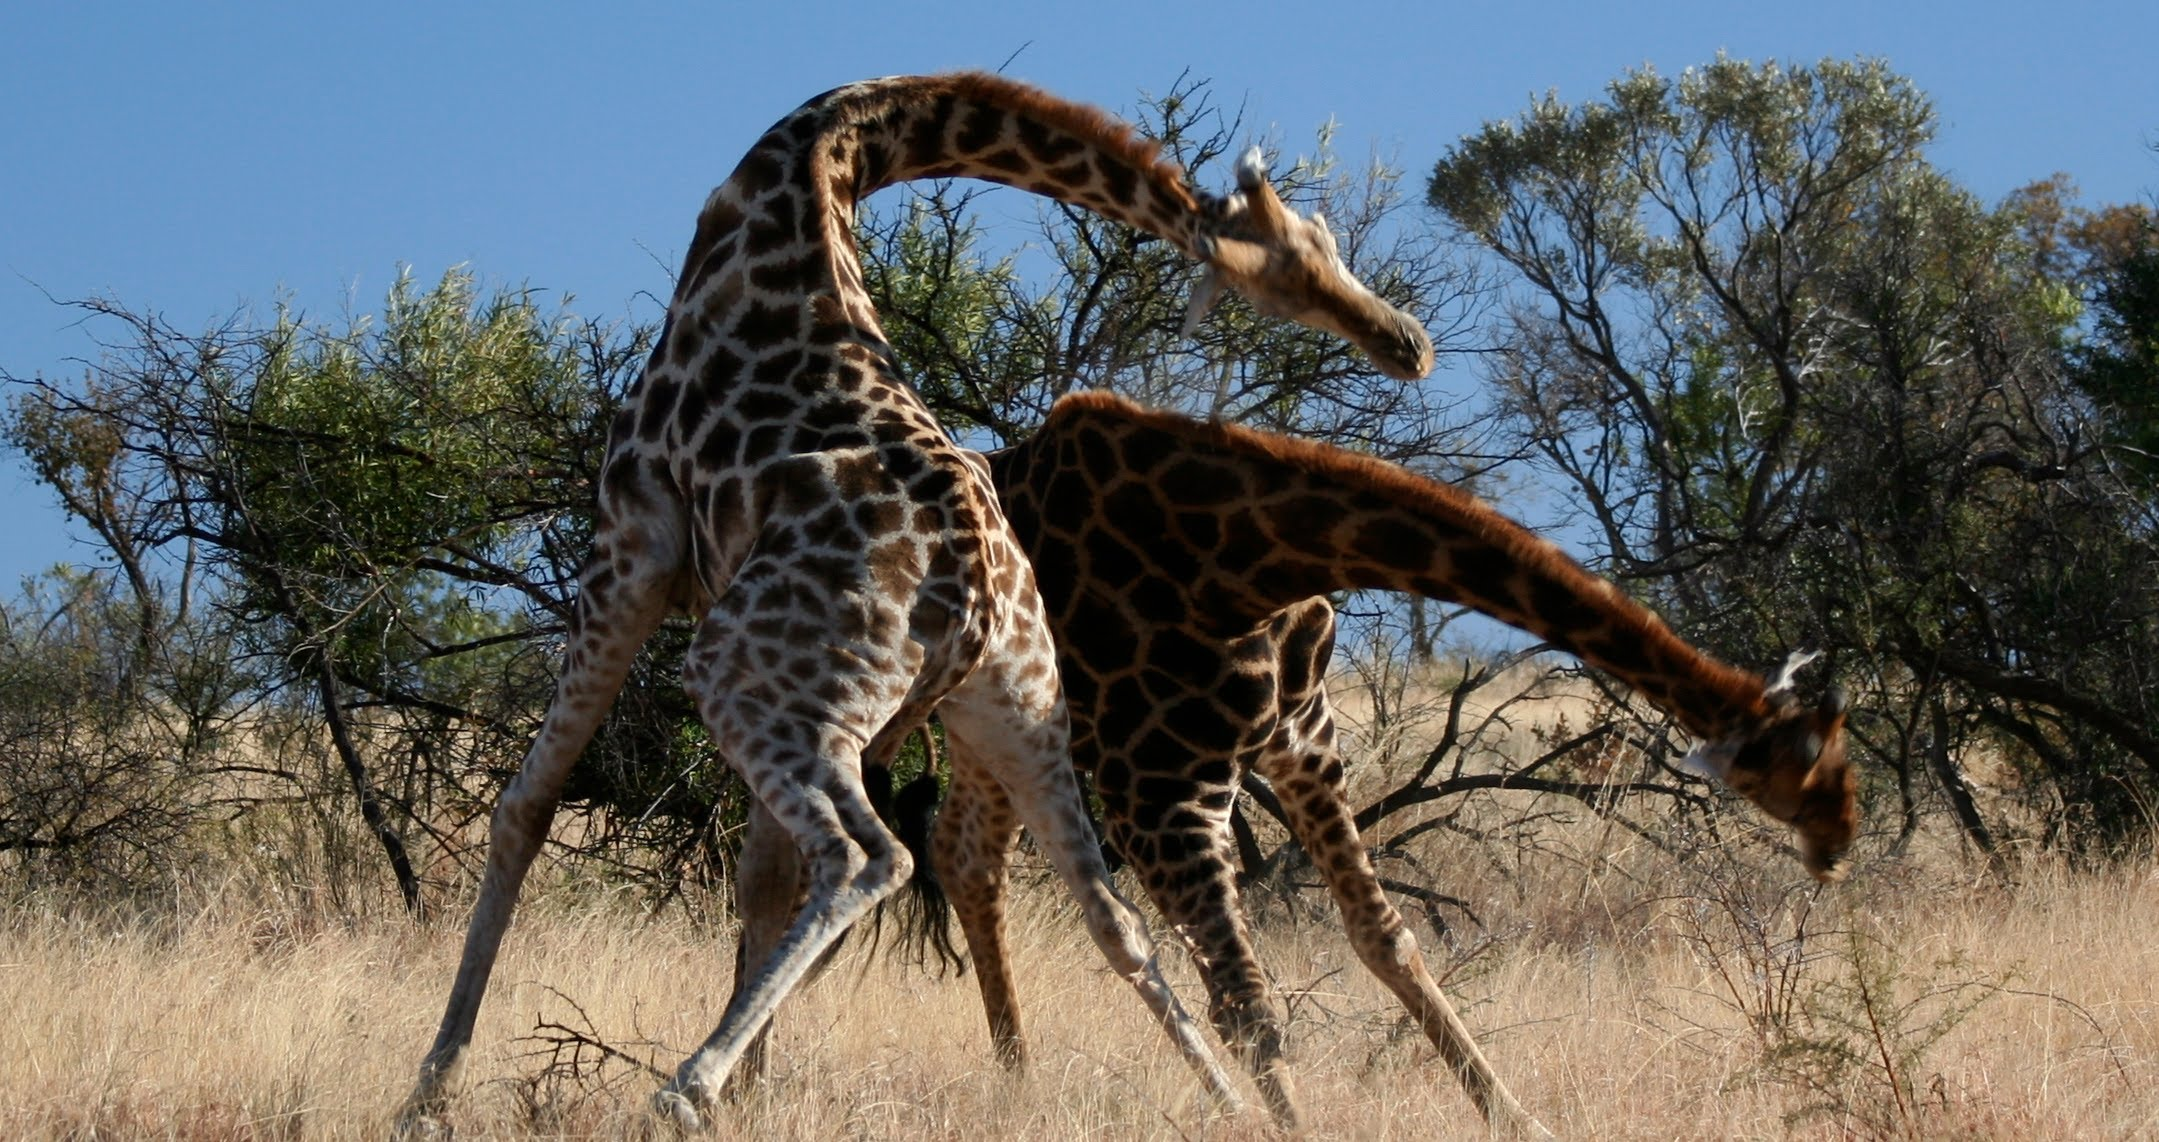 Giraffes fighting